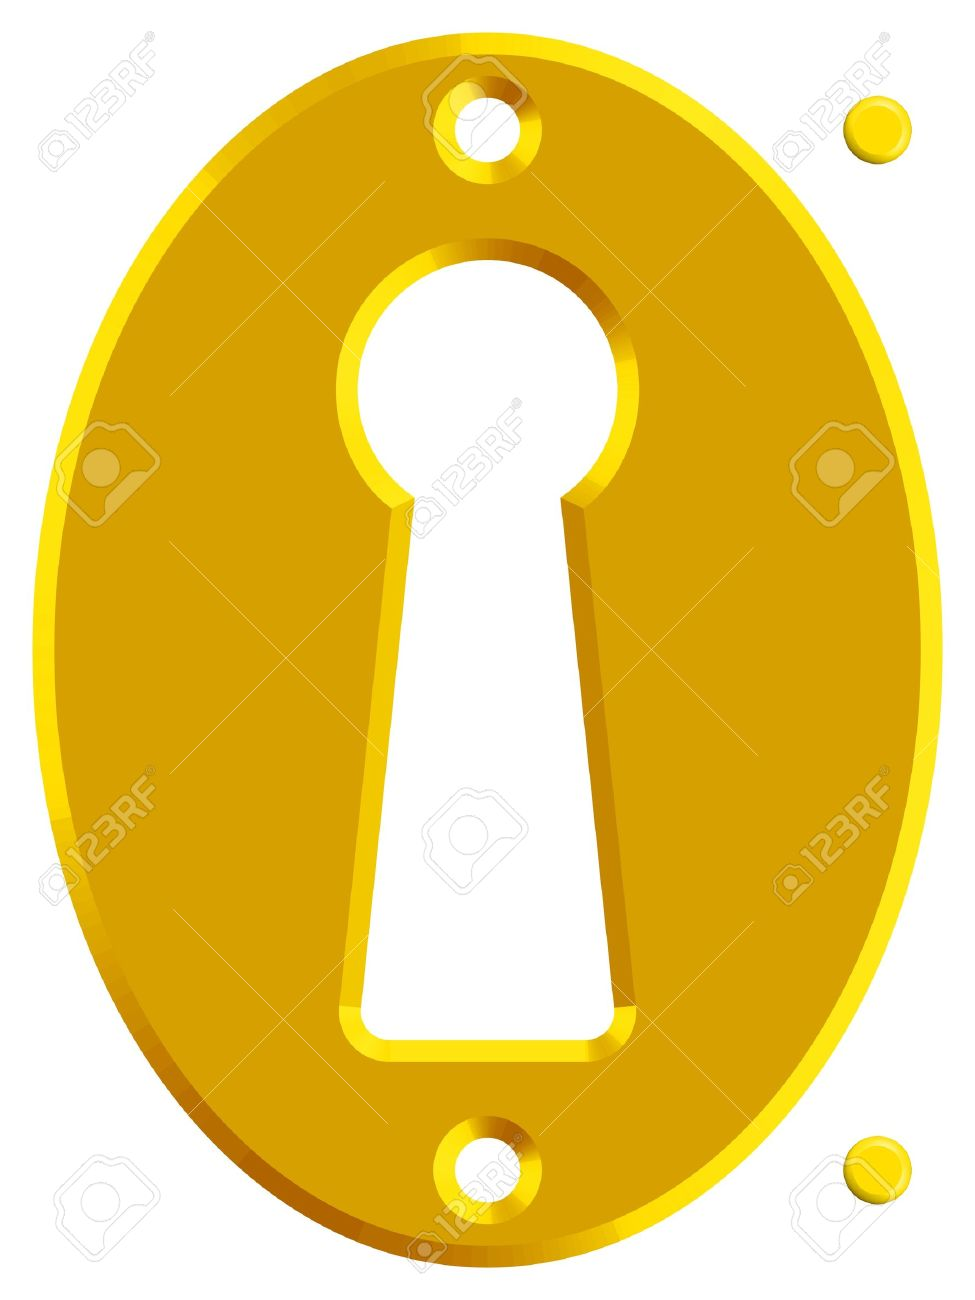 Keyhole plate clipart 20 free Cliparts   Download images ...